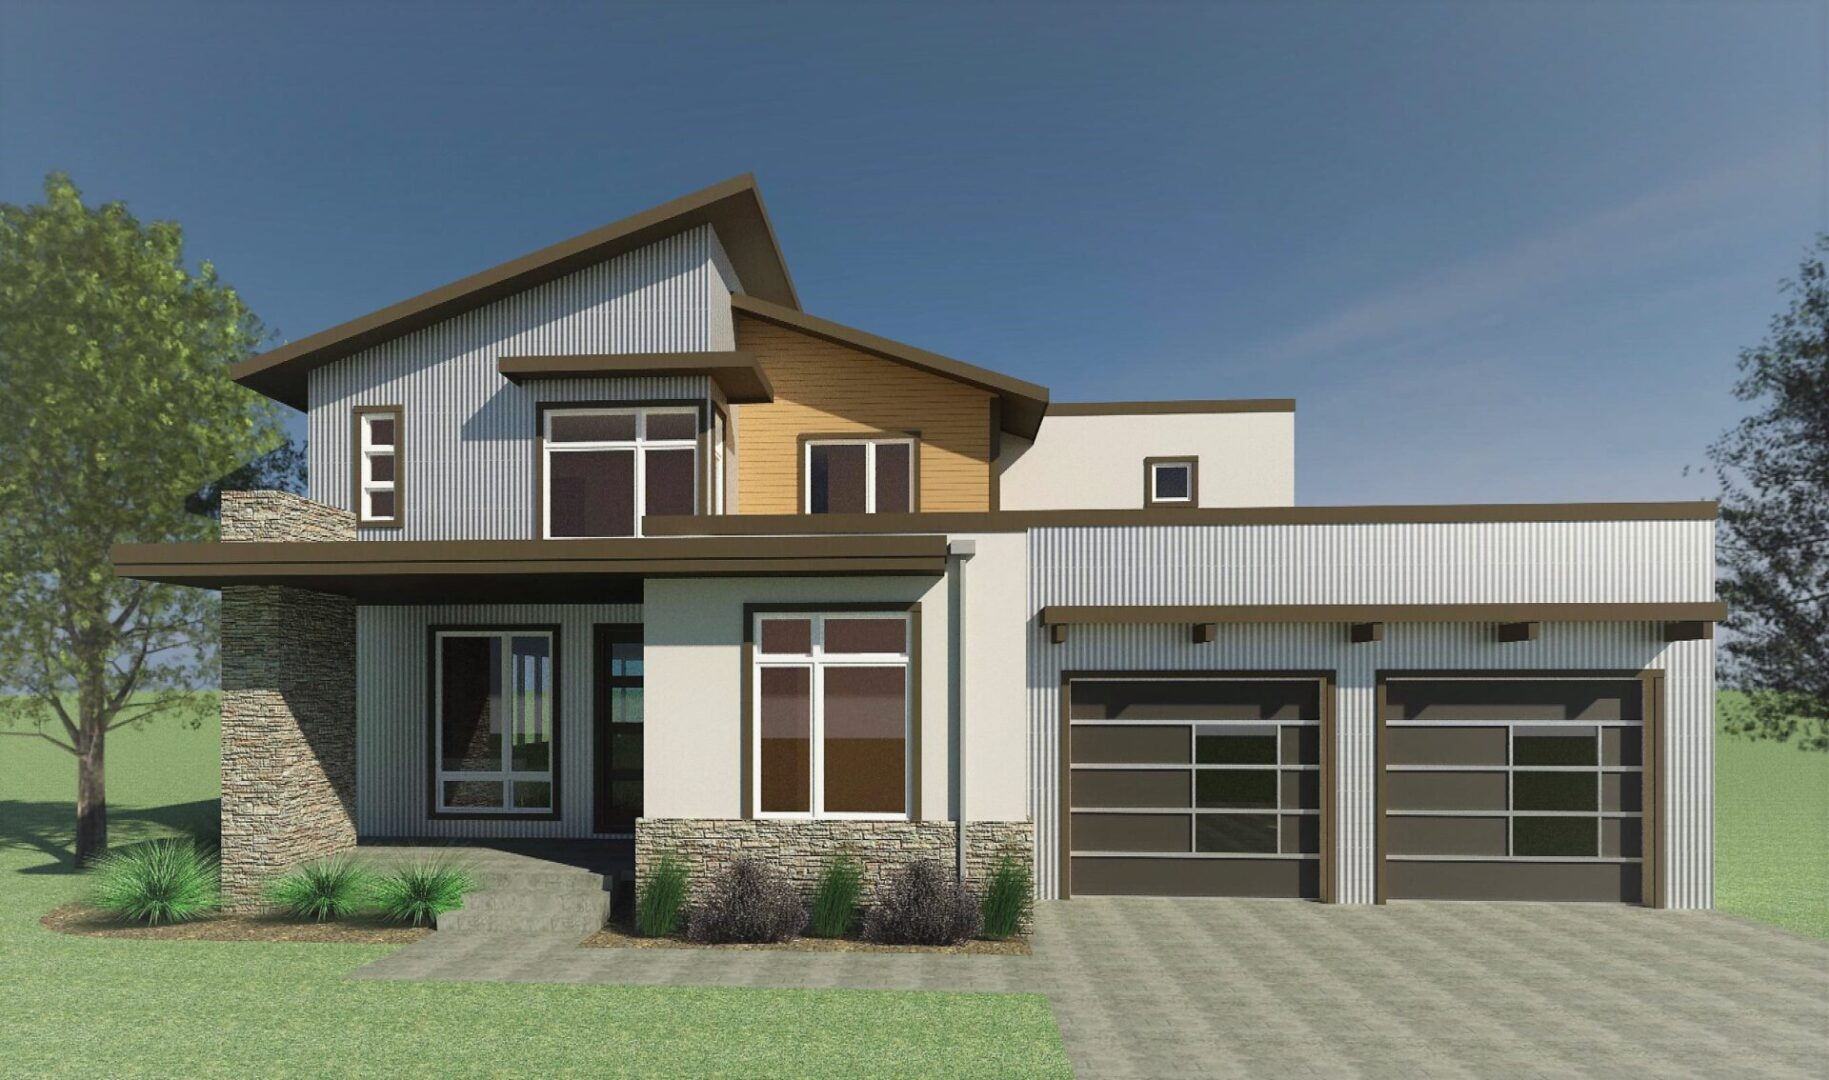 colored render of a two-story modern house with trees